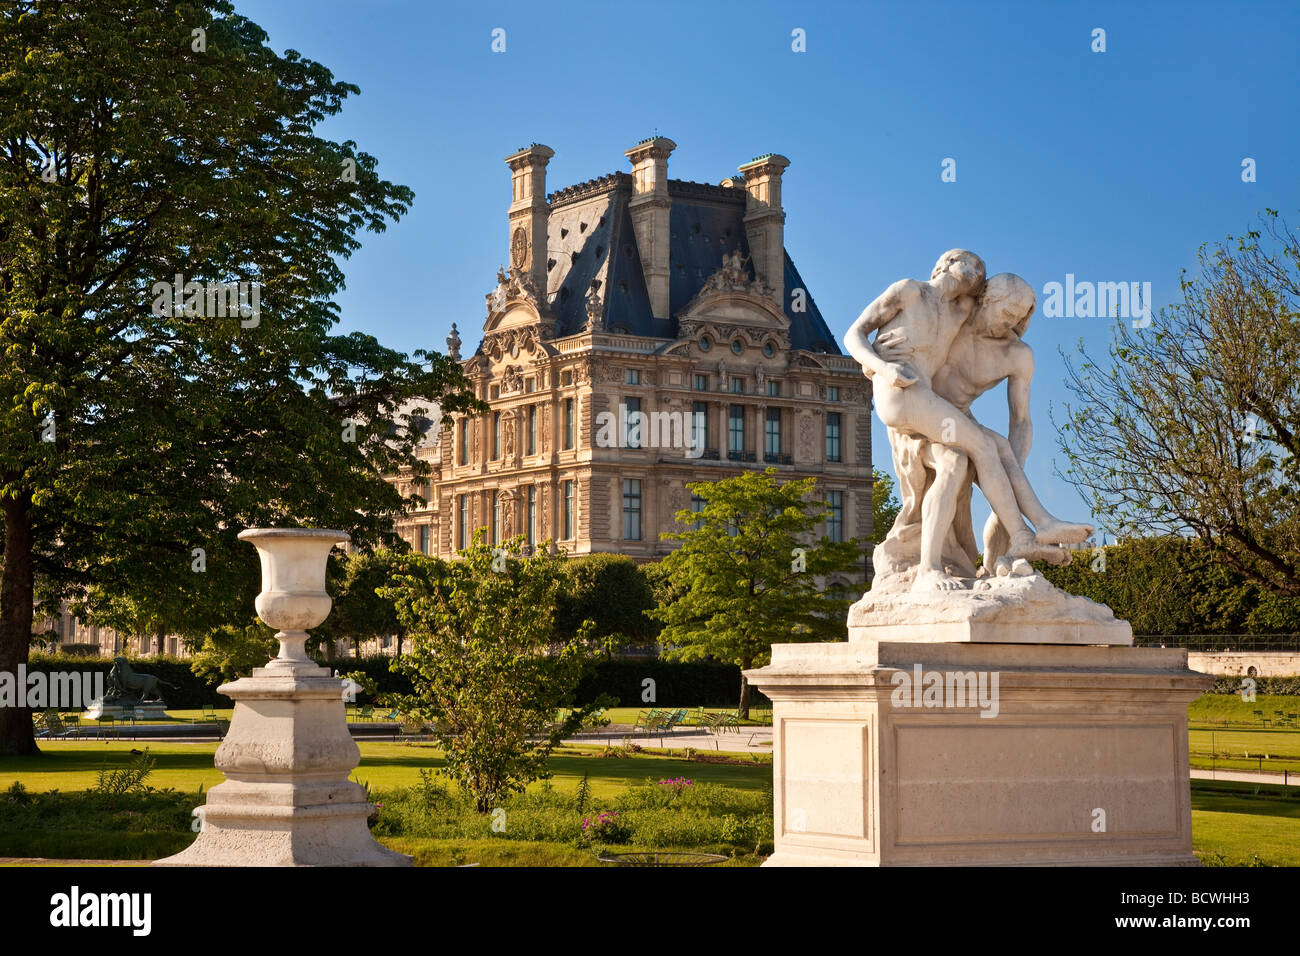 Statue in Jardin des Tuileries, Paris France - Stock Image